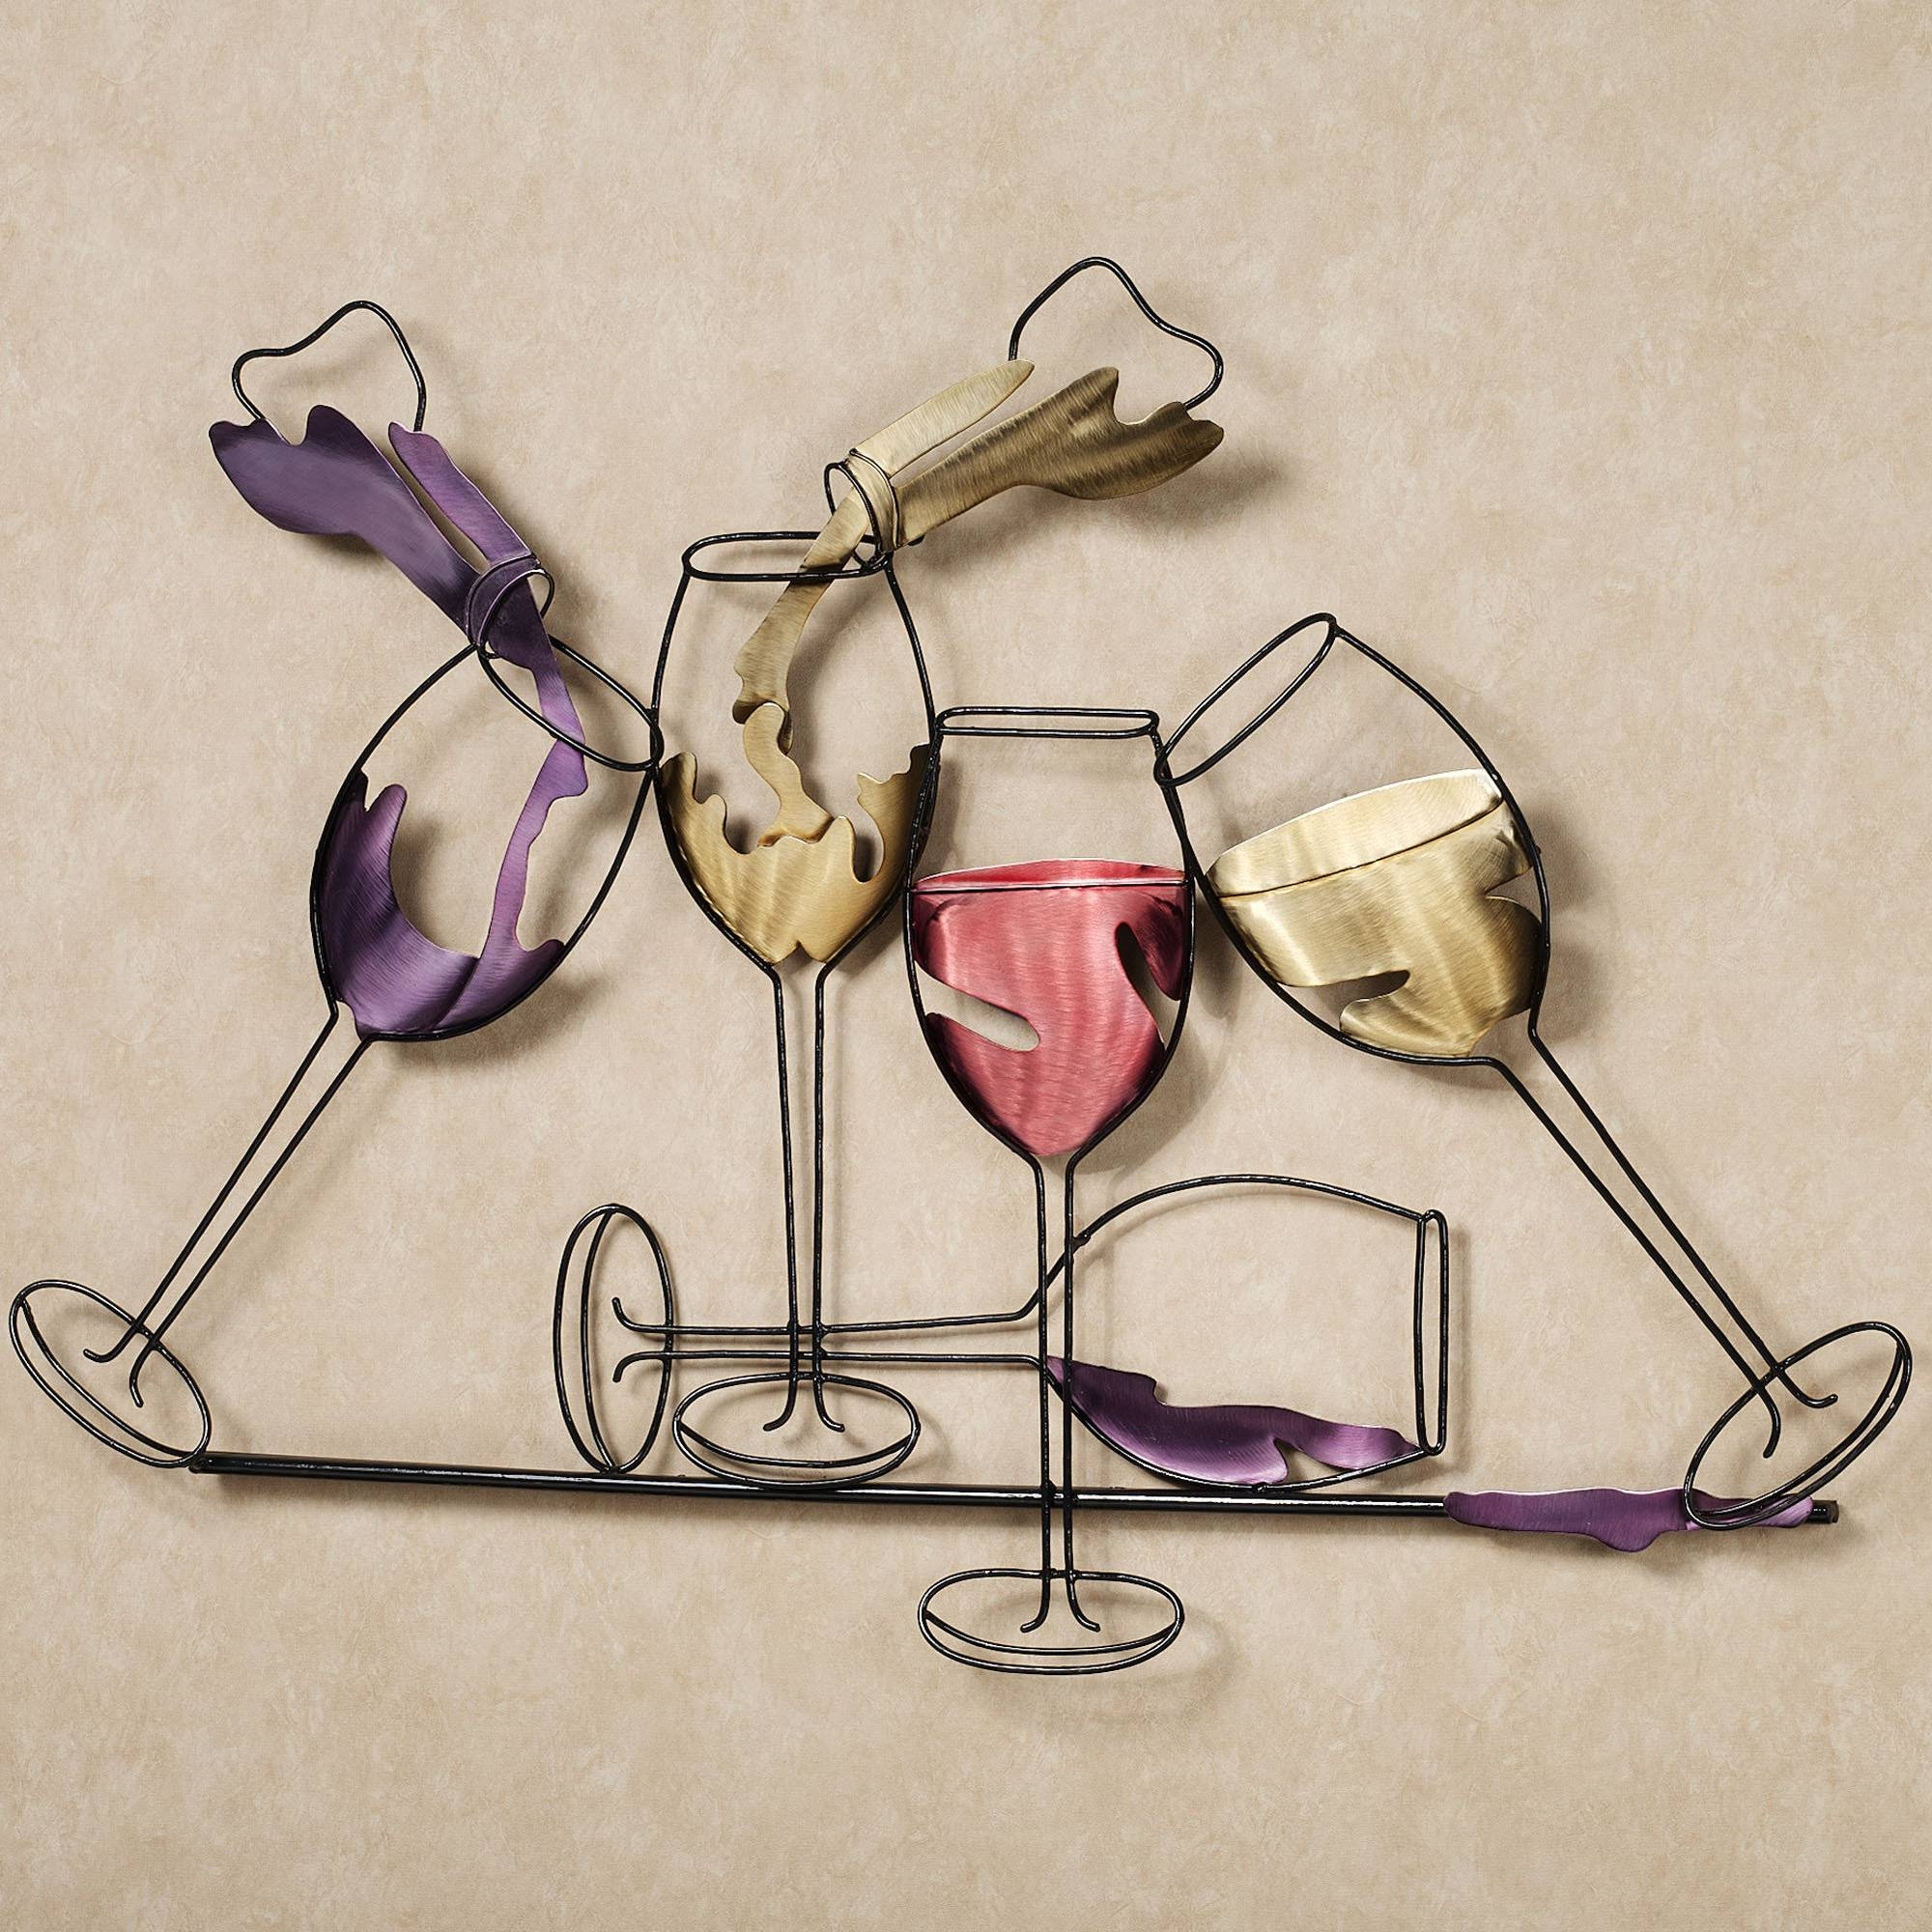 Artistic Glasses With Water Spilled Ideas For~ Popular Home In 2018 Metal Wall Art Decor And Sculptures (View 2 of 20)